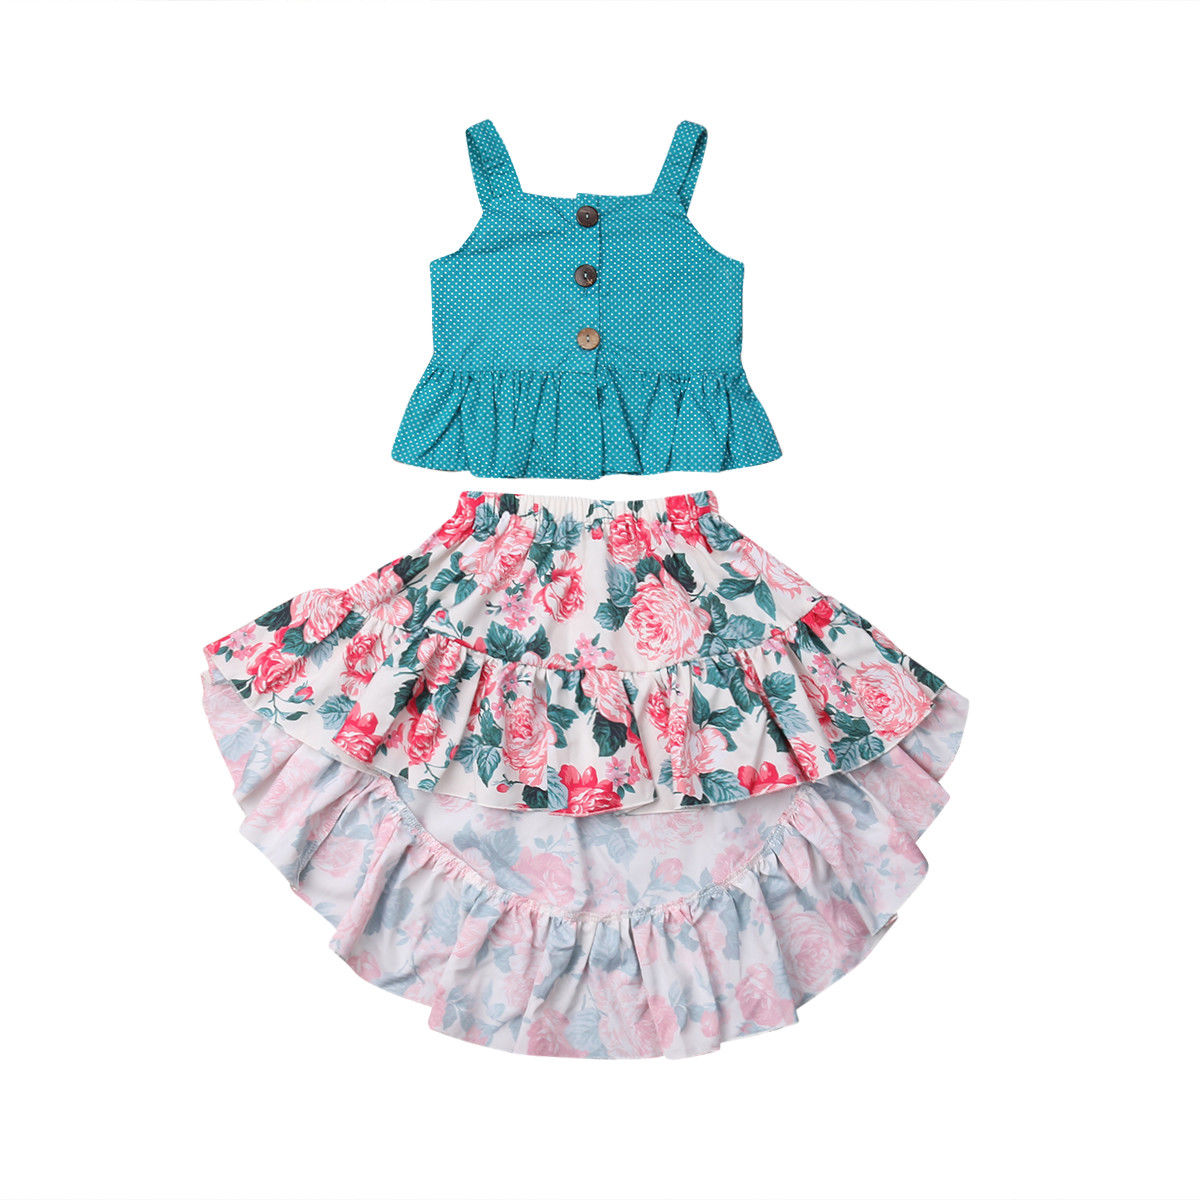 2019 2PCS Print Flower Toddler Youngsters Ladies Summer time Outfits Garments Gown Tops+Skirt Outfits Set Trend Clothes Clothes Units, Low-cost Clothes Units, 2019 2PCS Print Flower Toddler Youngsters Ladies...